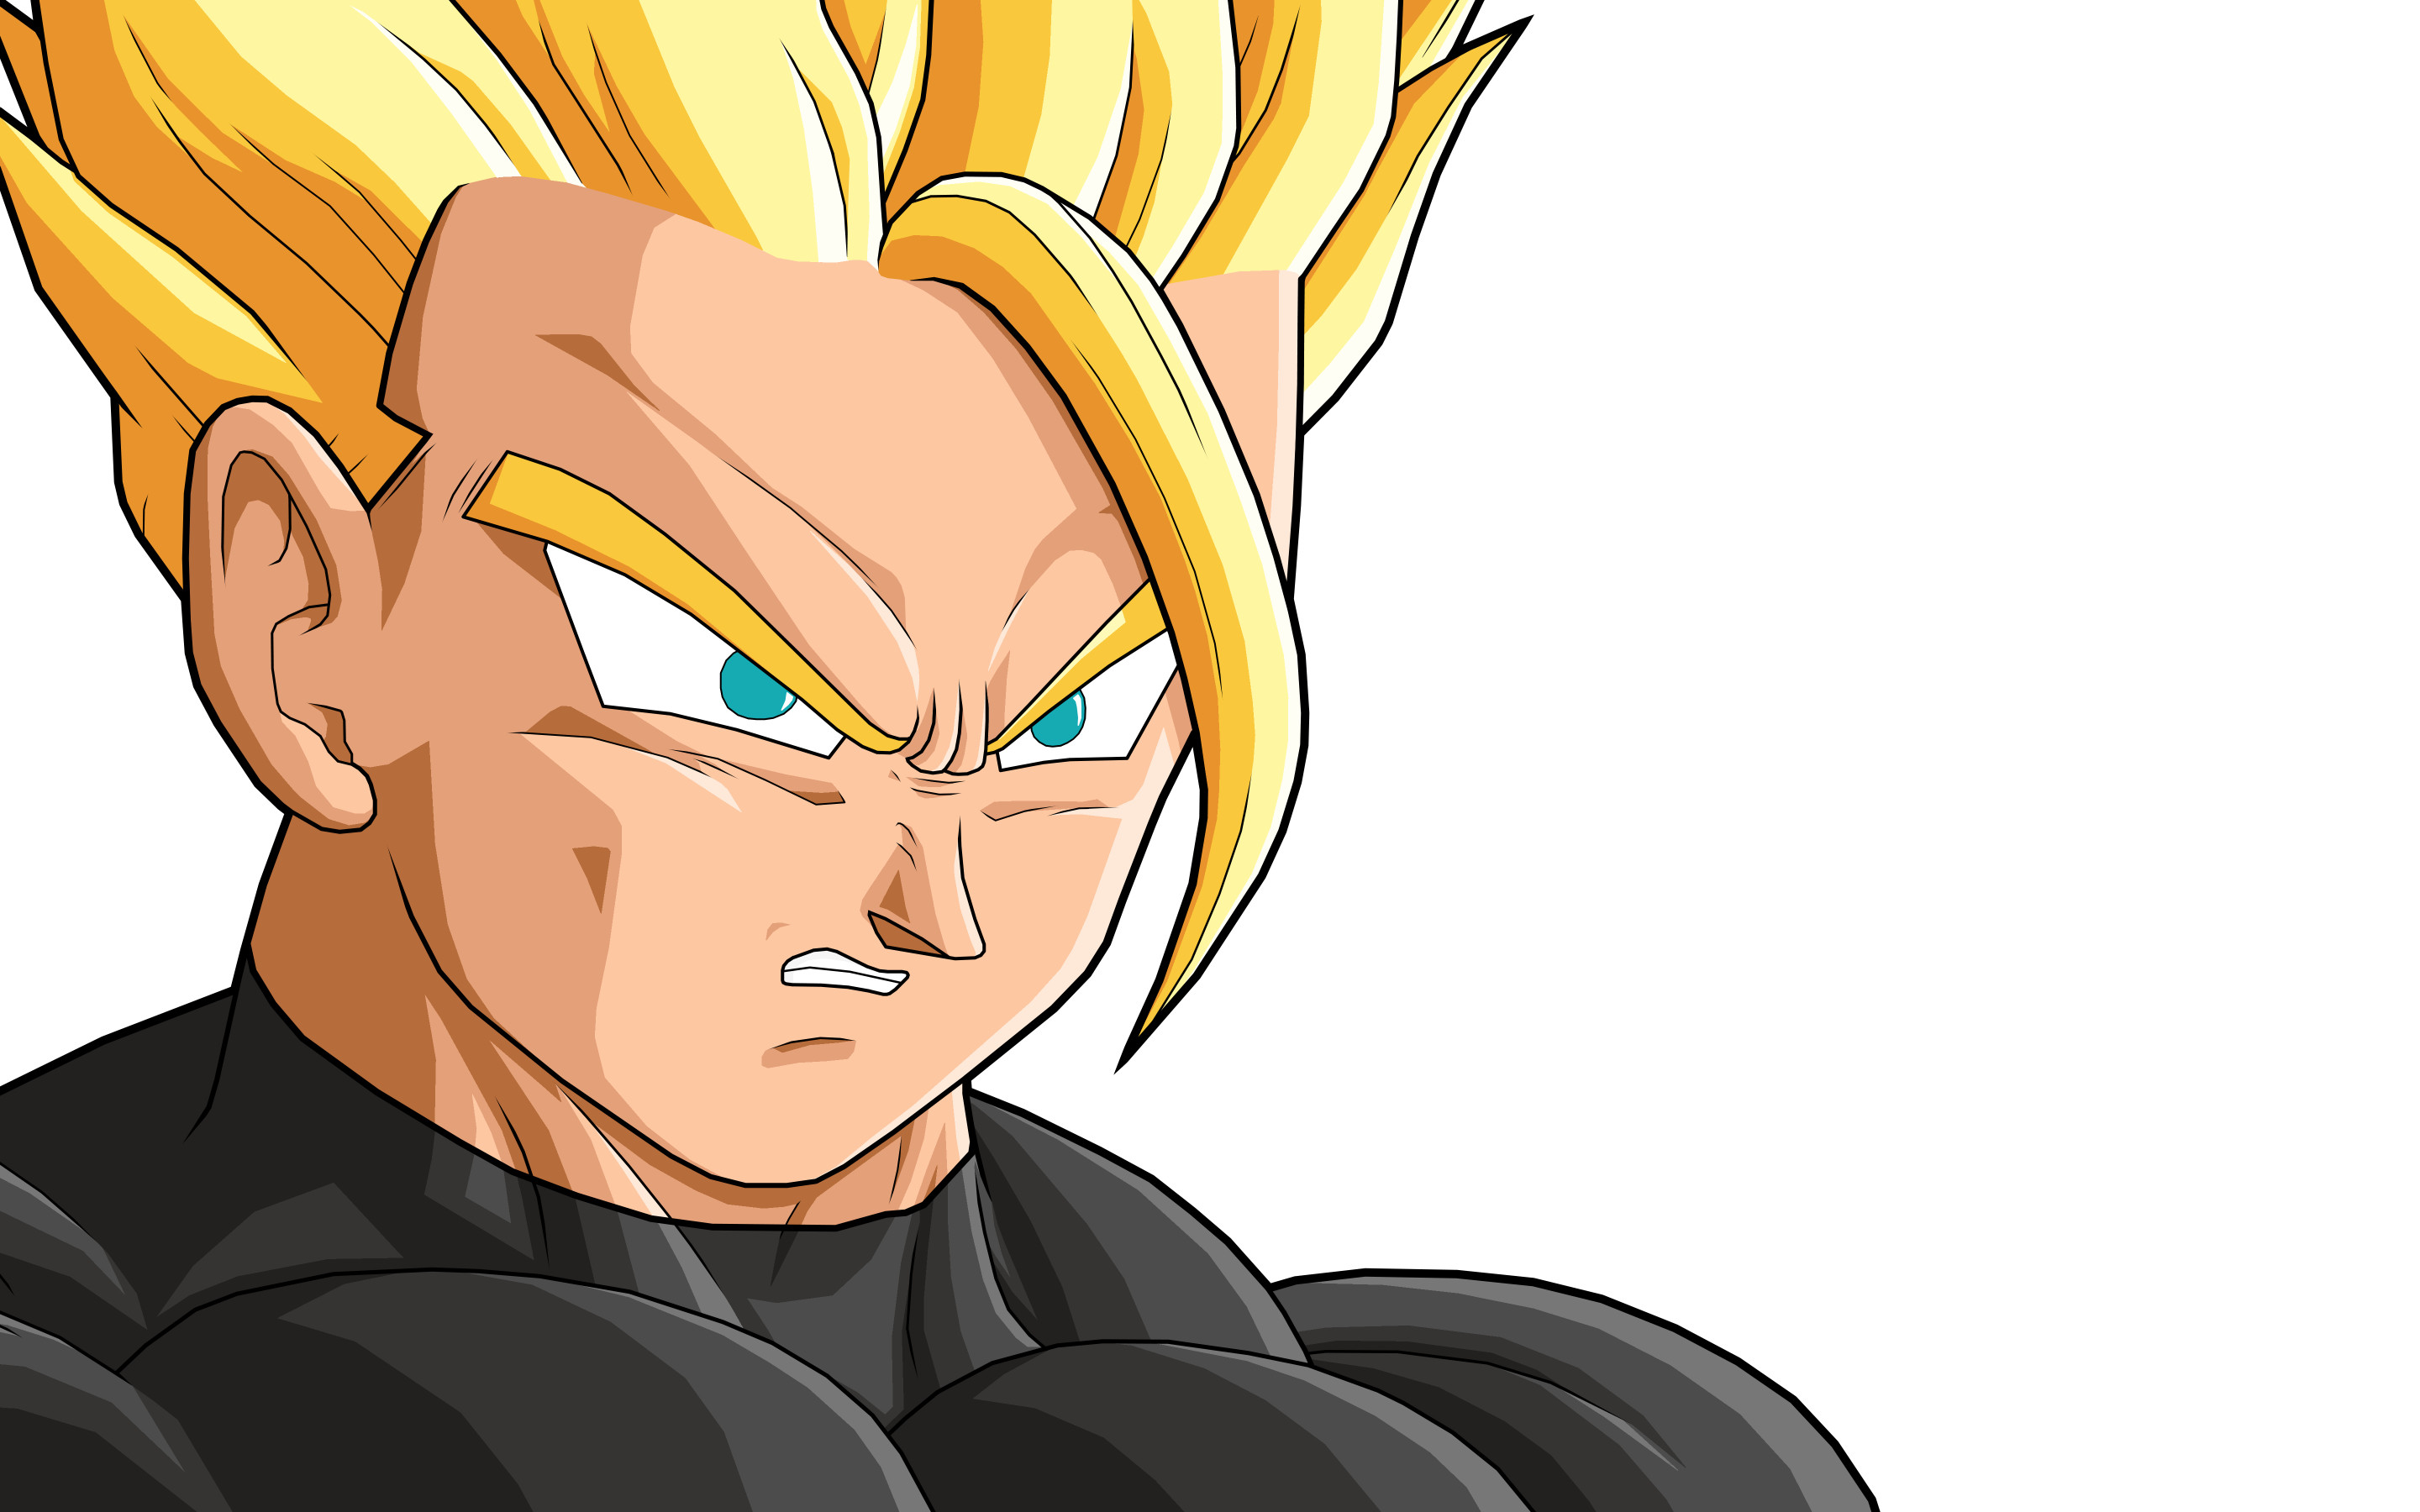 Res: 2880x1800, Gohan HD Wallpapers - Free Desktop Images And Photos